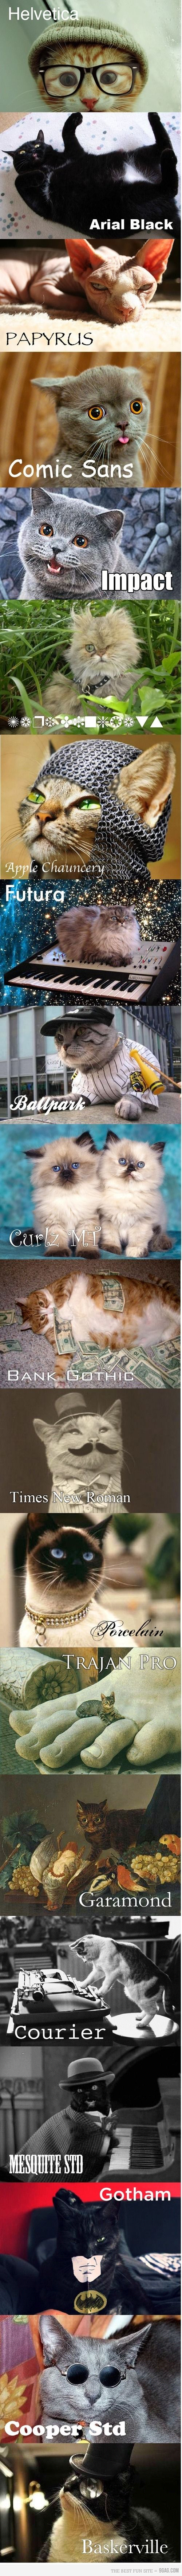 typography, kitty style. This made me laugh so hard!